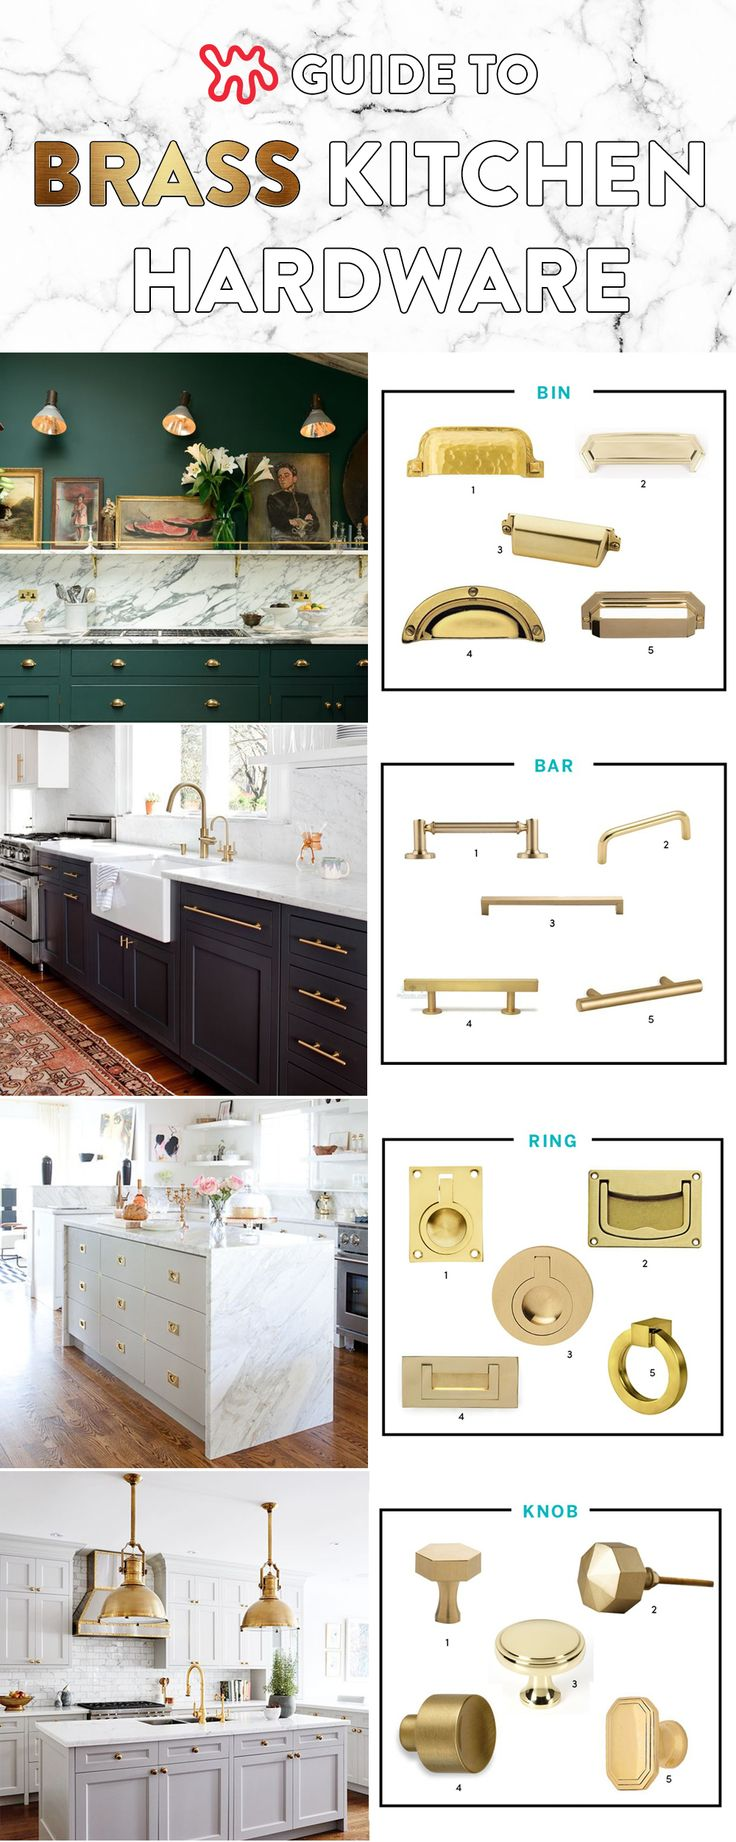 All About That Brass: A Kitchen Hardware Shopping Guide | Pull Bar, Hardware  And Bar